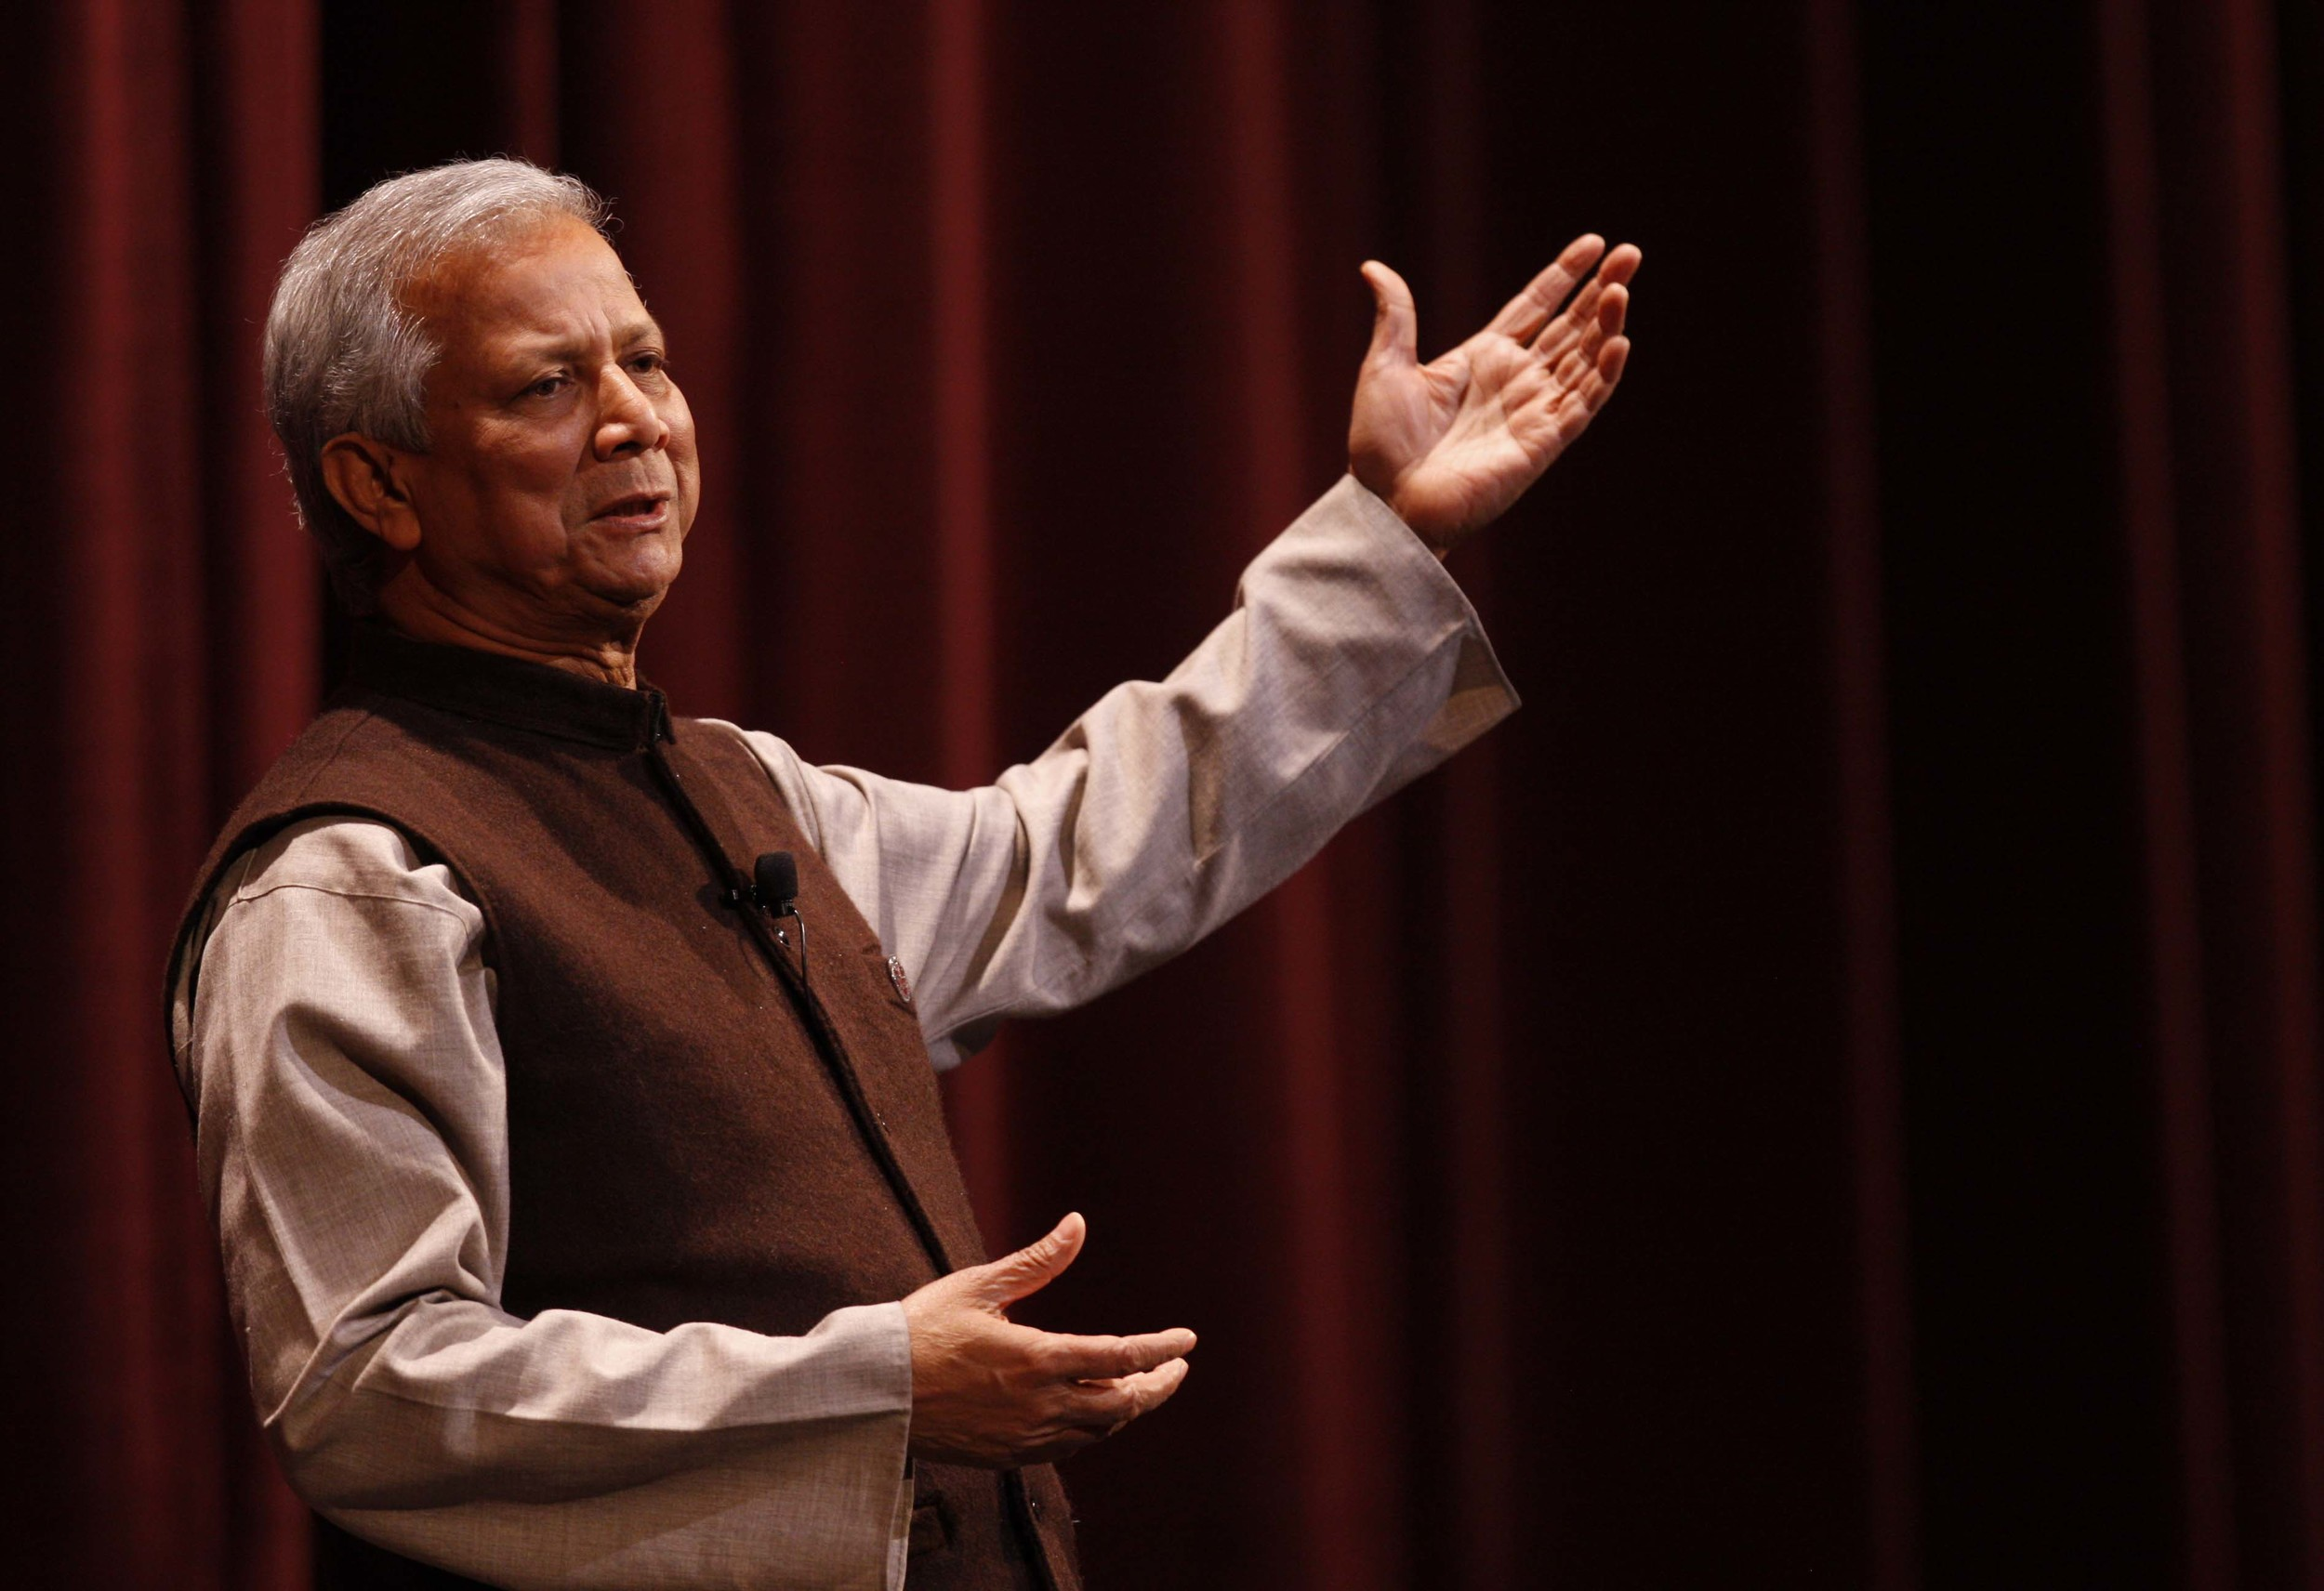 Nobel Peace Prize Winner and Economist Dr. Muhammad Yunus